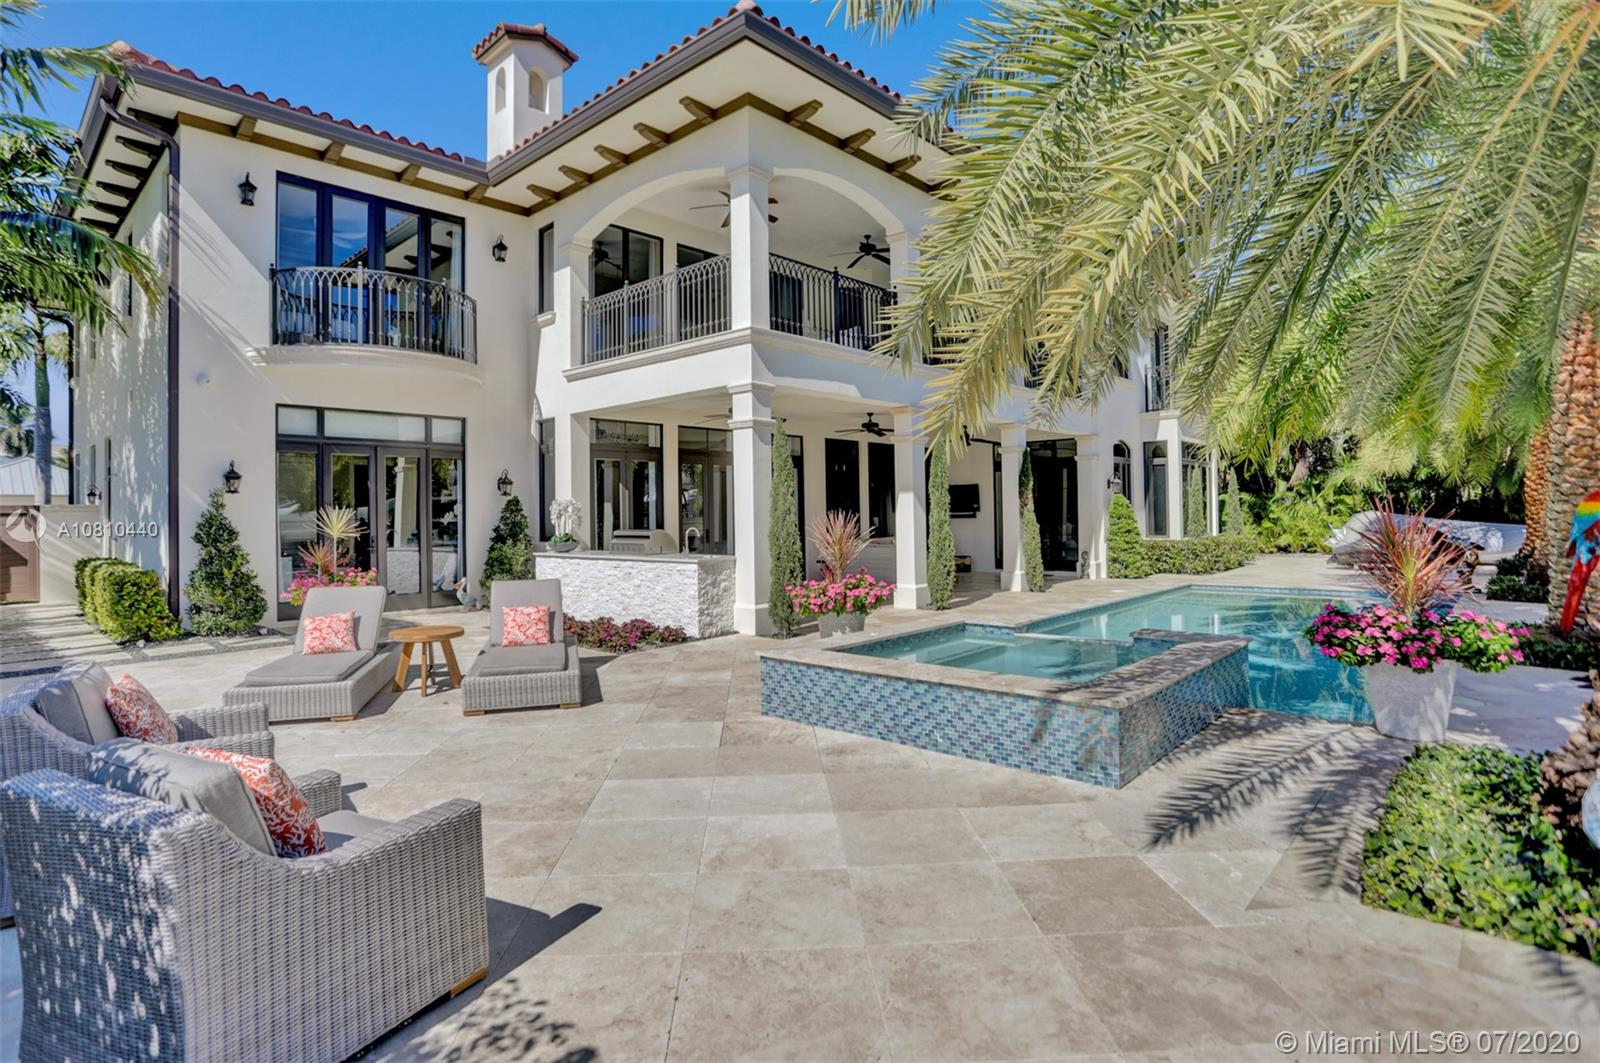 PRICED TO SELL! Fort Lauderdale's most prestigious waterfront neighborhoods of Nurmi Isles. New concrete dock and seawall with 95 feet of waterfront.  Breathtaking views of the Venetian inspired 120 foot wide deepwater canal from every room.Catch a workout in the fitness room, hit the outdoor shower or dip in the heated salt water pool.Gourmet kitchen featuring Thermadore appliances, gas range,double ovens, take it outside to your beautiful summer kitchen. Cozy up in the formal living room in front of the gas fireplace. Take the impressive curved stairway or elevator to the 2nd floor to your grand elegant master suite. Master bath fit for a king & queen with his & hers water closets, dual vanities & grand Walk In Closet, Yacht Also Avail.